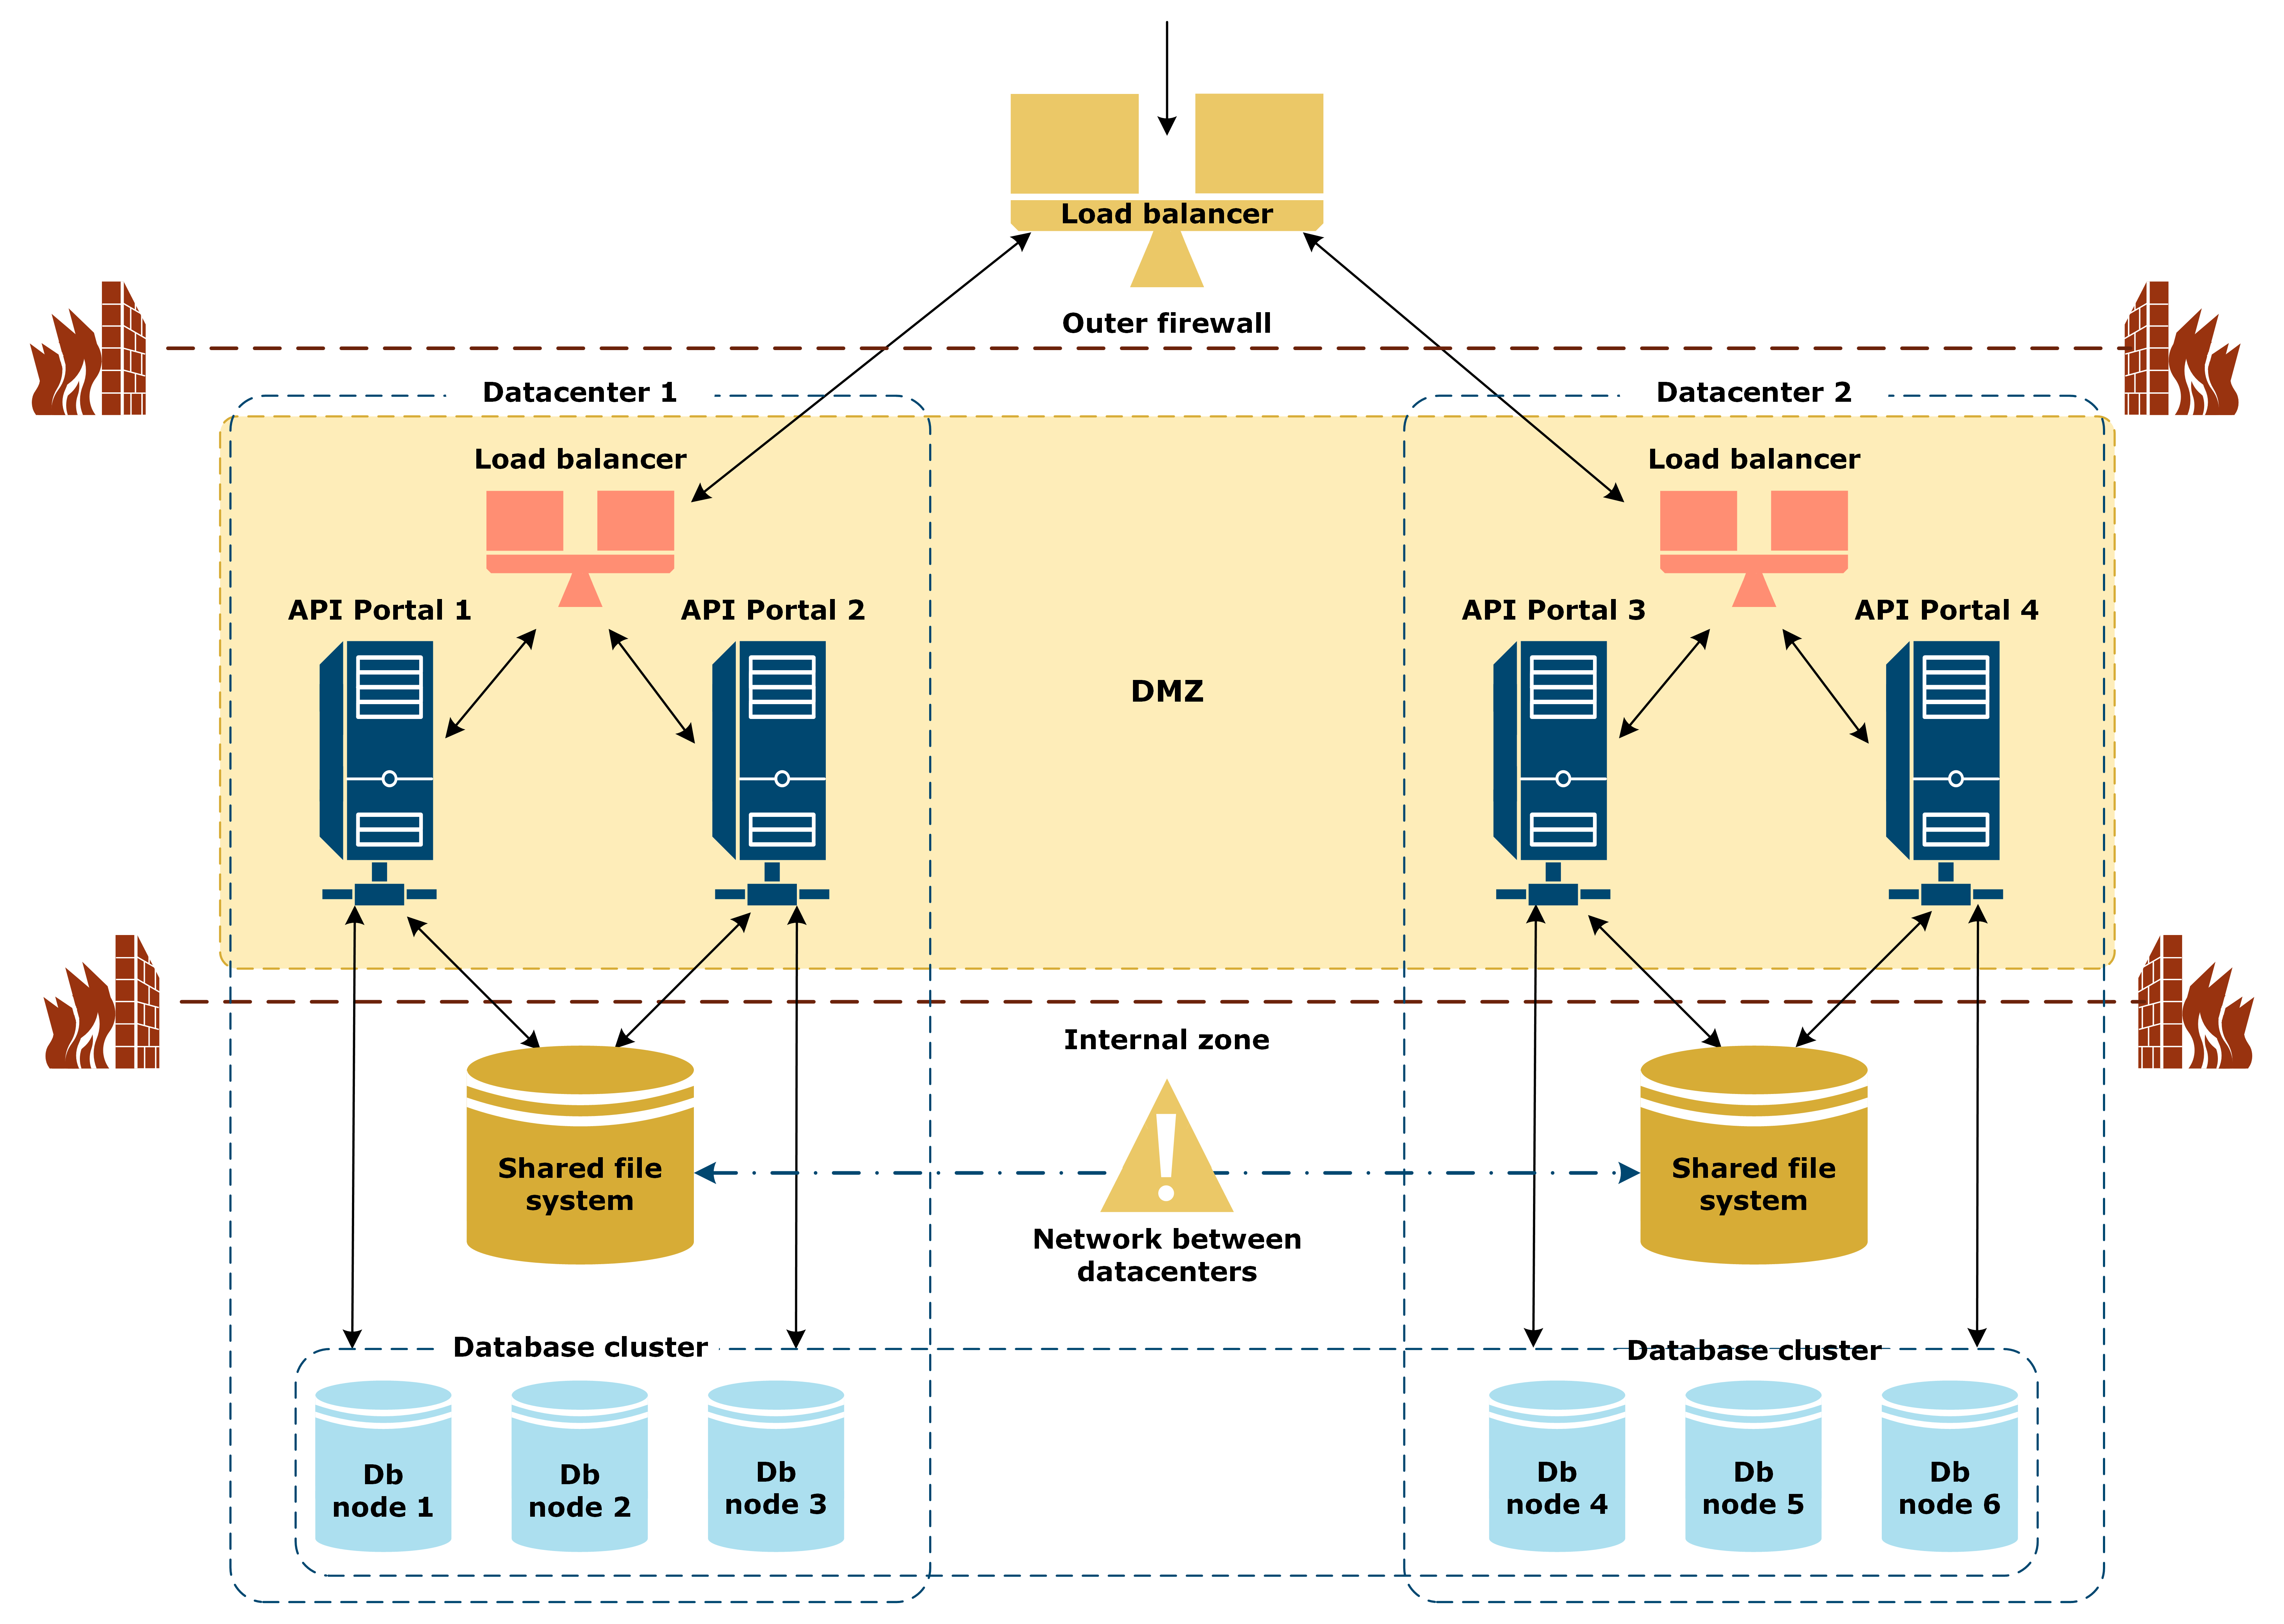 Illustration of the API Portal multi-datacenter reference architecture with failed network between the datacenters